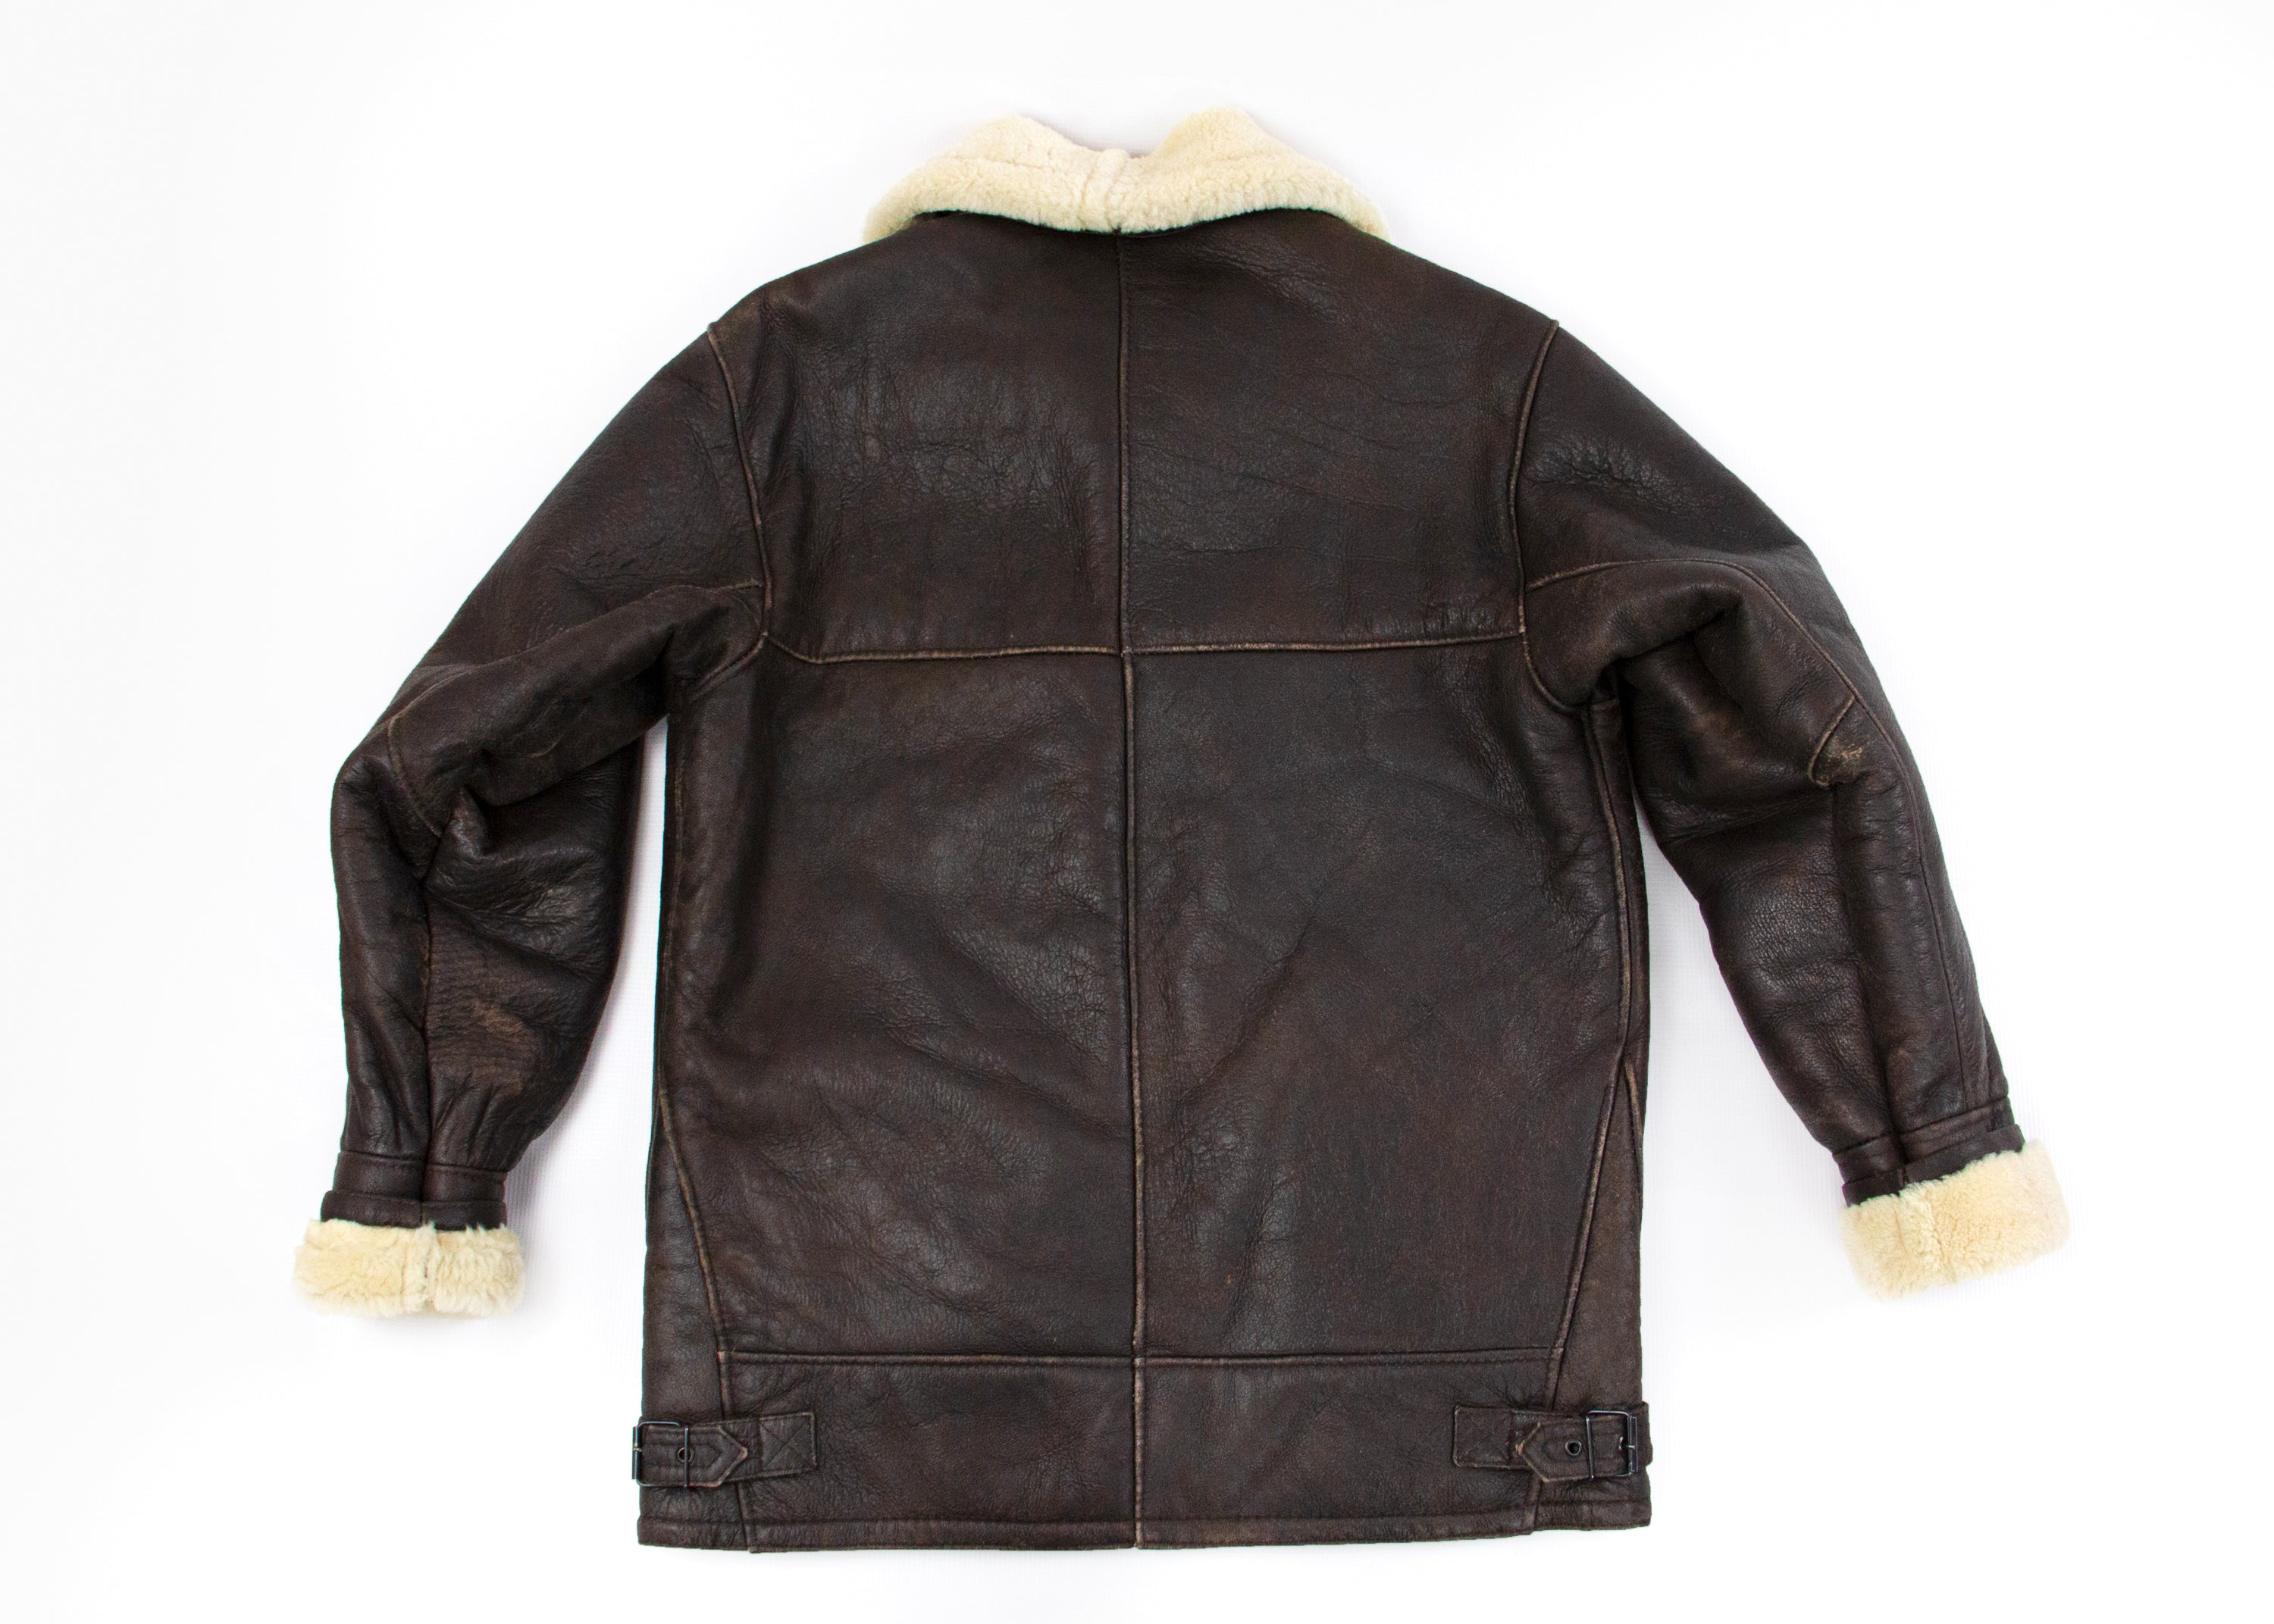 Airforce/Type-B/Aviator Style Bomber Shearling Jacket, L - US 40 - secondfirst